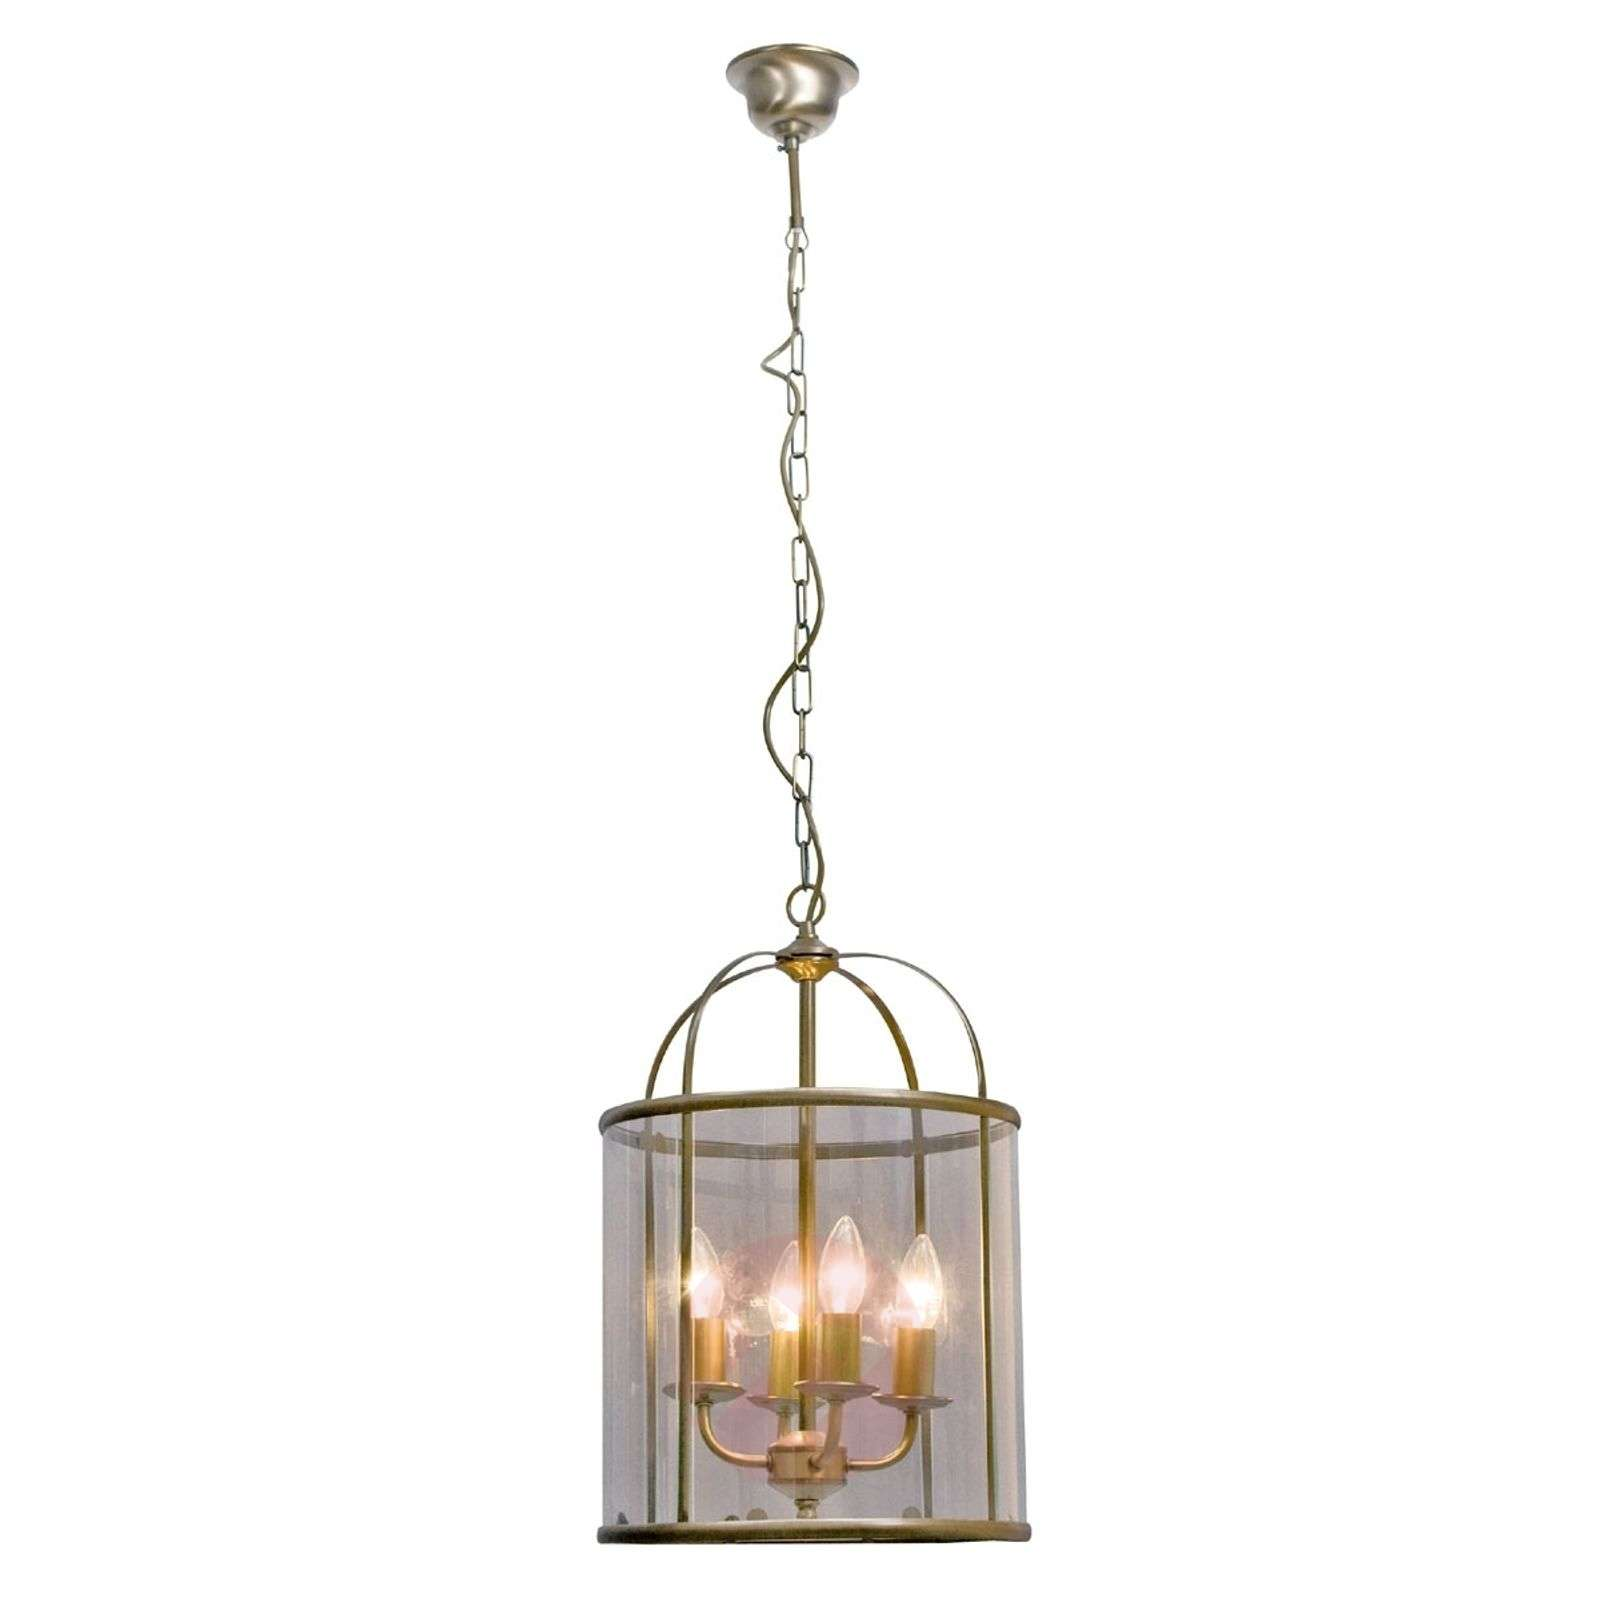 Suspension décorative Pimpernel-8509461X-01